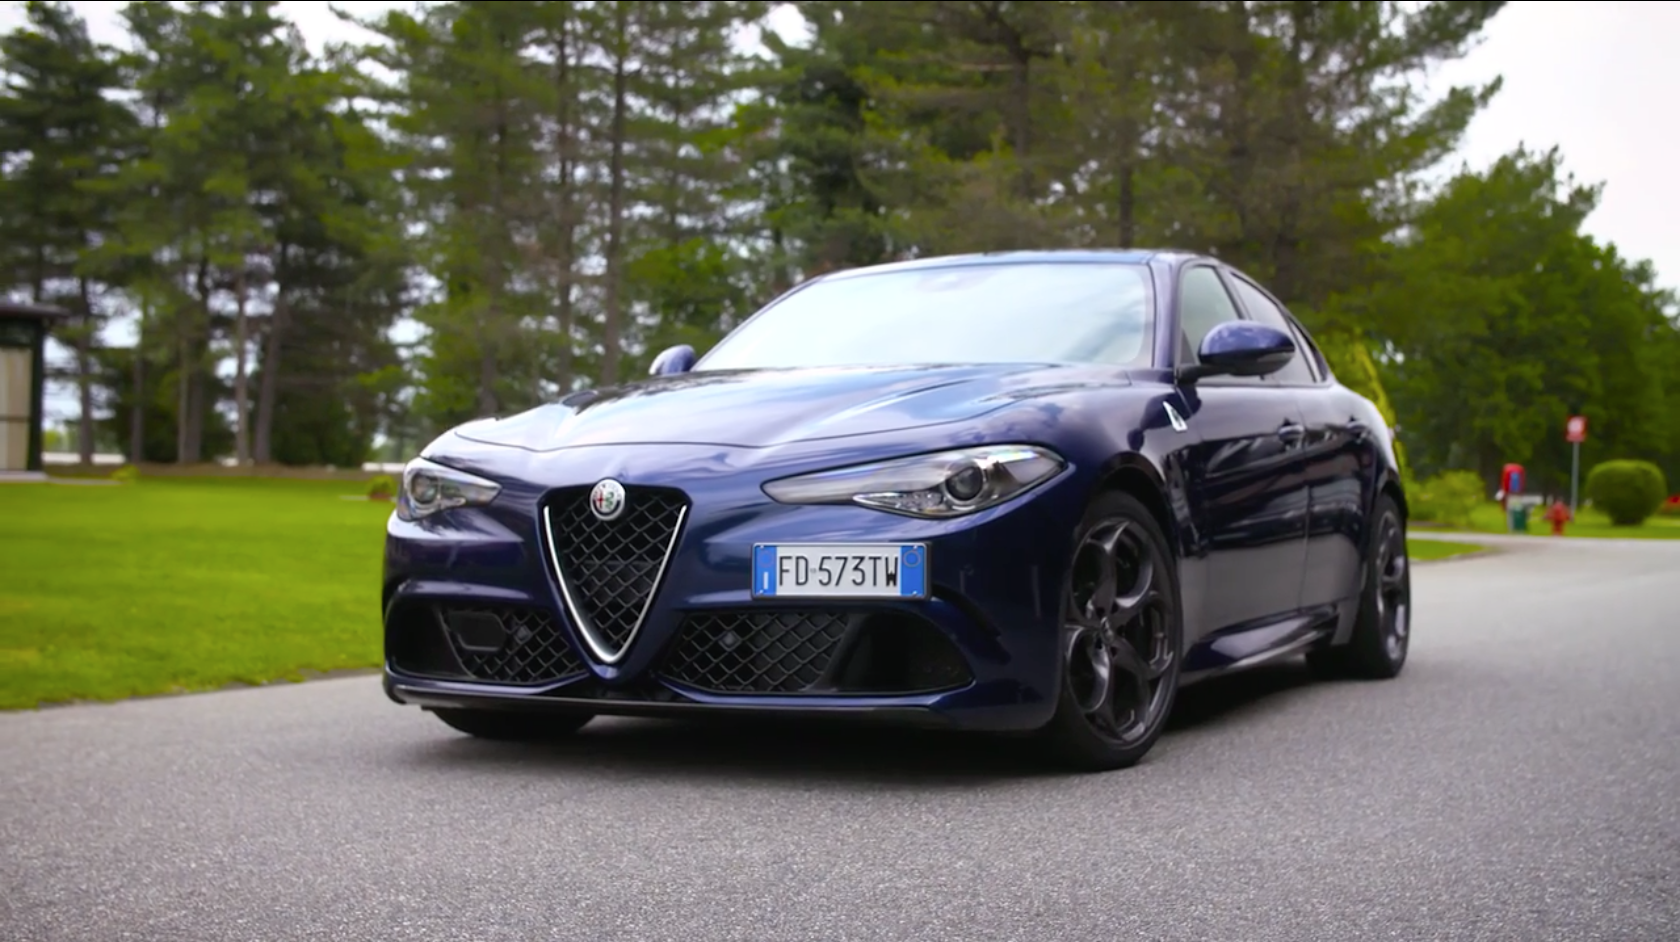 Chris Harris Debuts New Top Gear Online Series, Tests New Hot Alfa Romeo